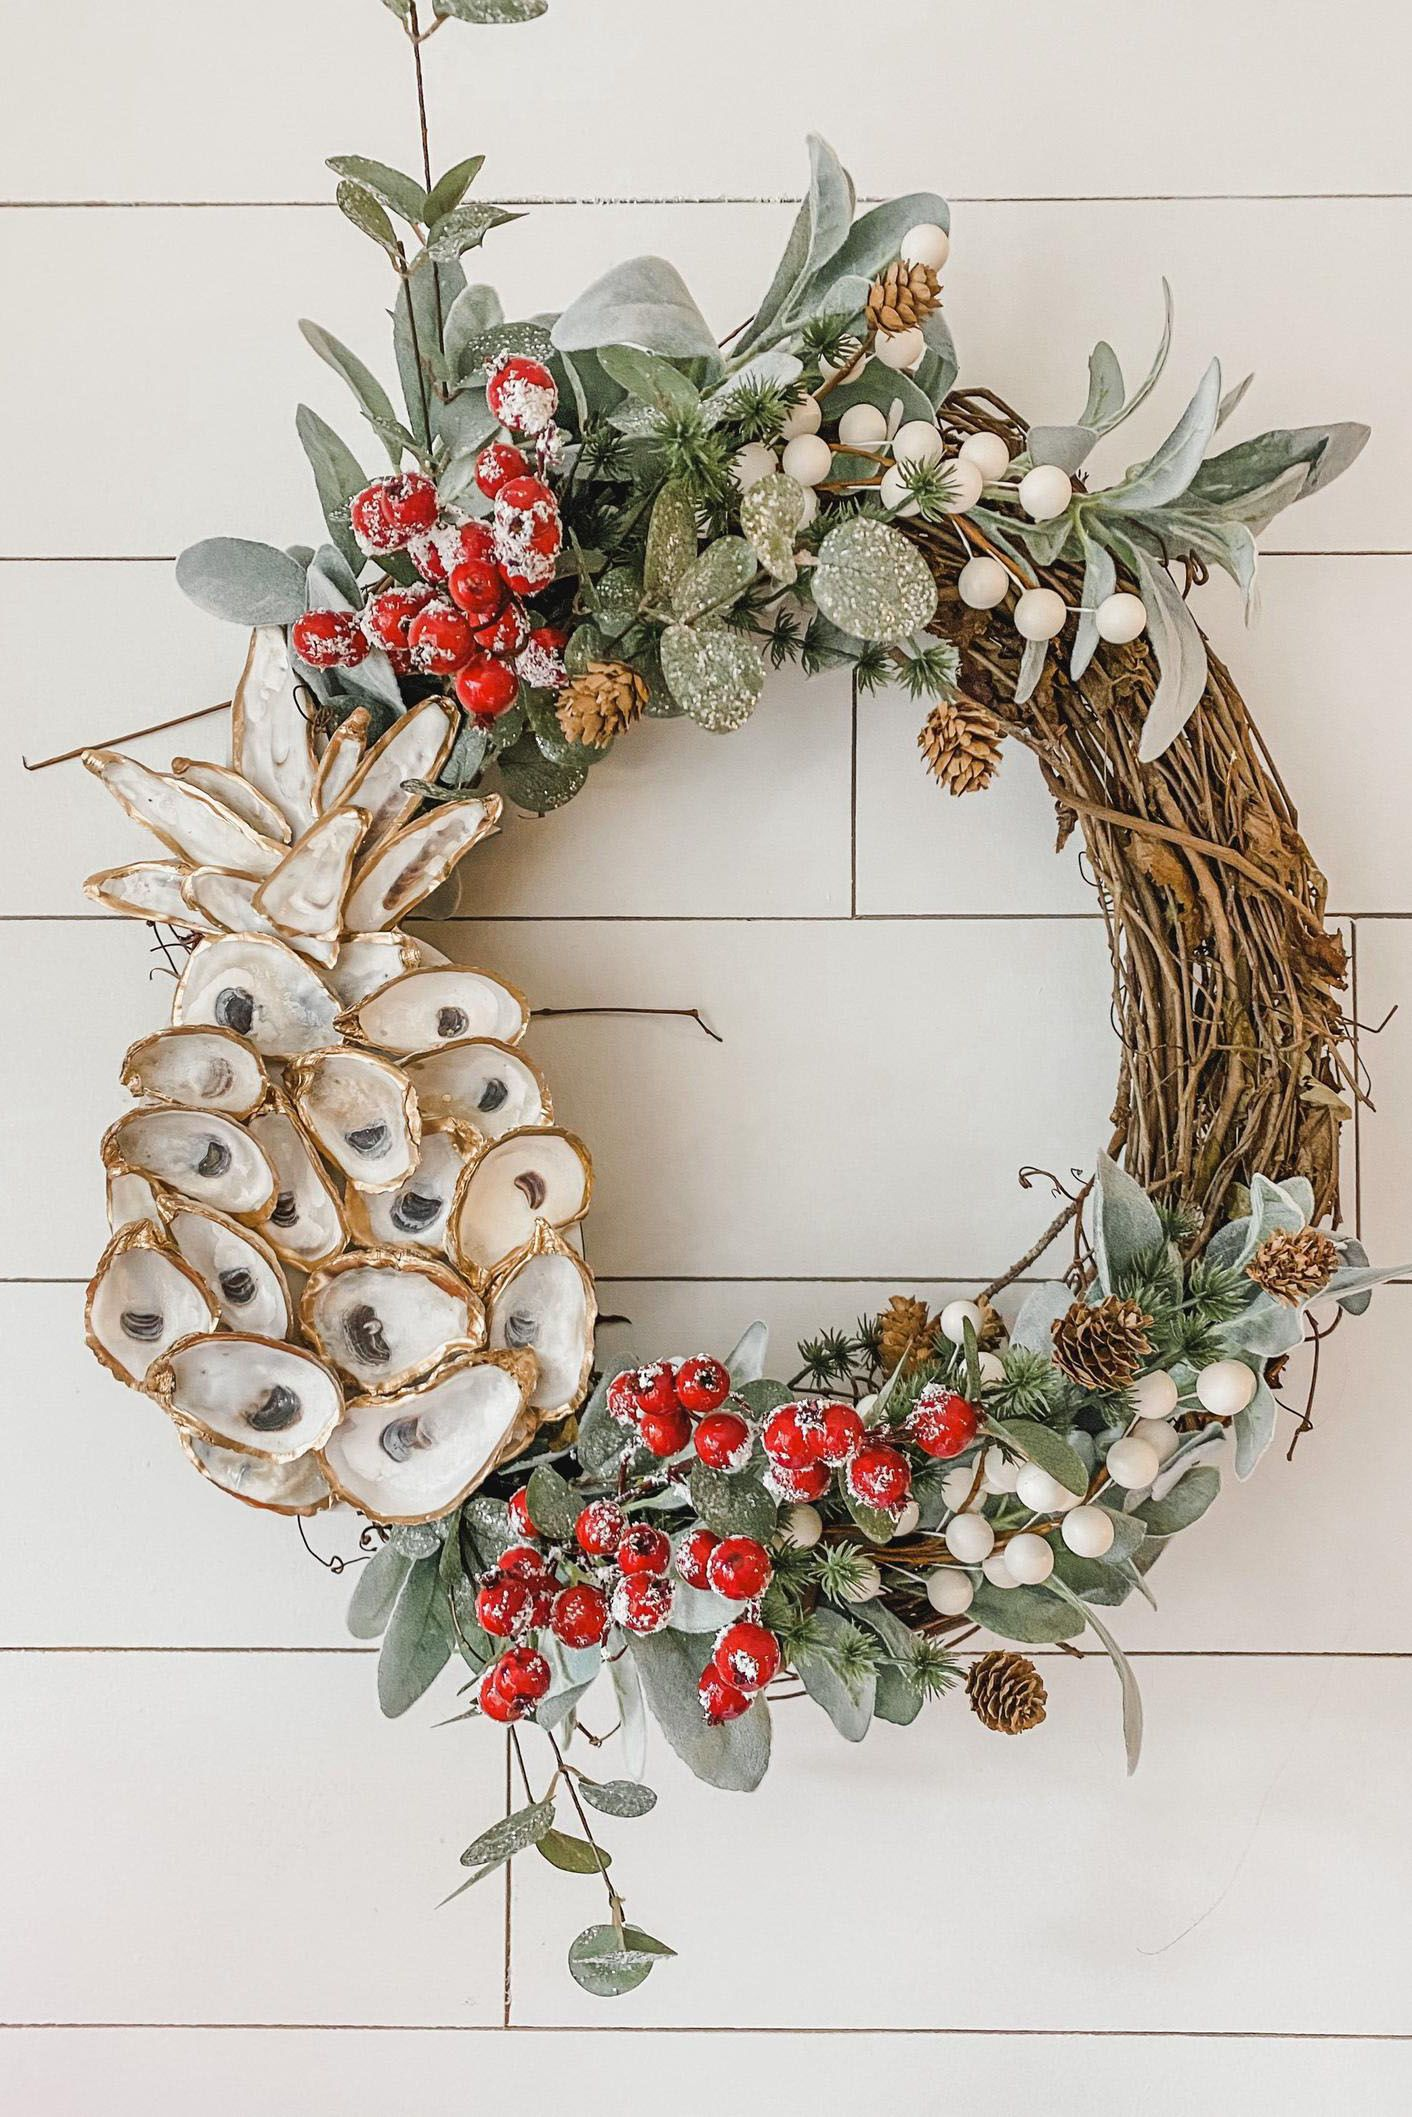 Beautiful tropical holiday wreath with an oyster shell pineapple. This grapevine wreath has a mix of Christmas pine and pine cones, lambs ear greenery, sparkle eucalyptus, red snowy berries, and white berry floral accents.